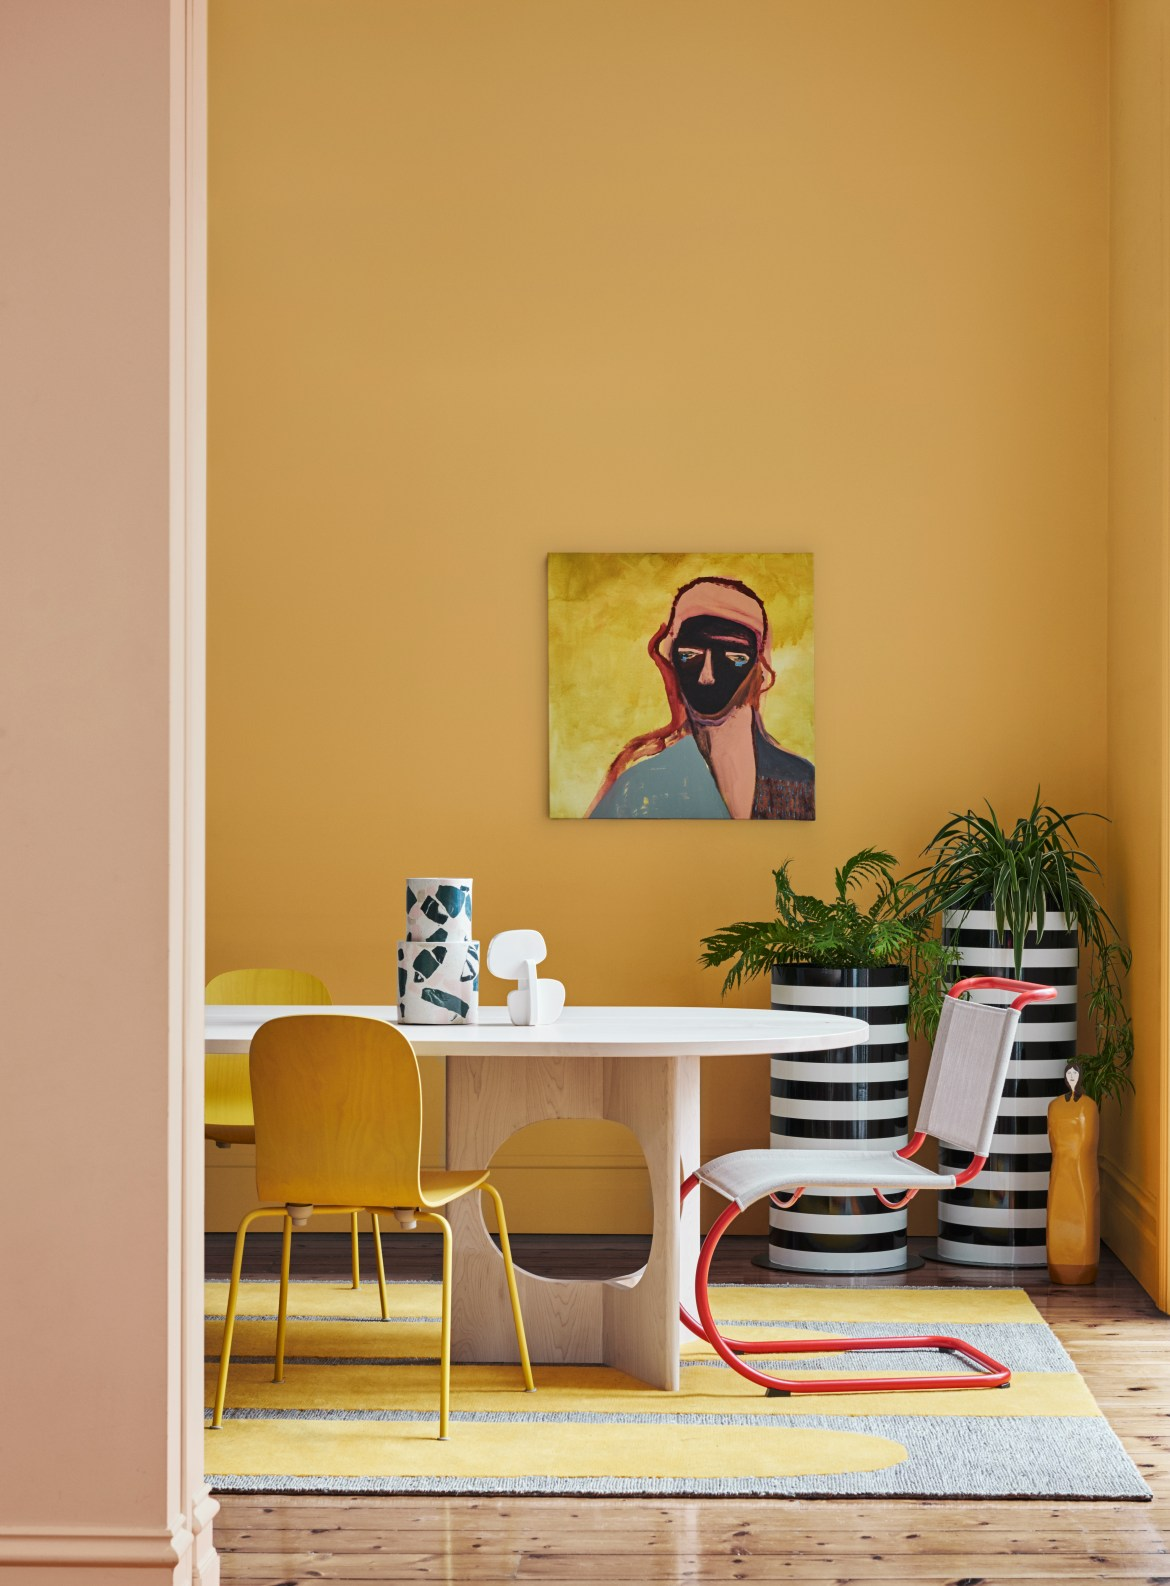 Dulux Australia has finally released its brand new trends for the next year, revealing the Dulux Colour Forecast 2019.